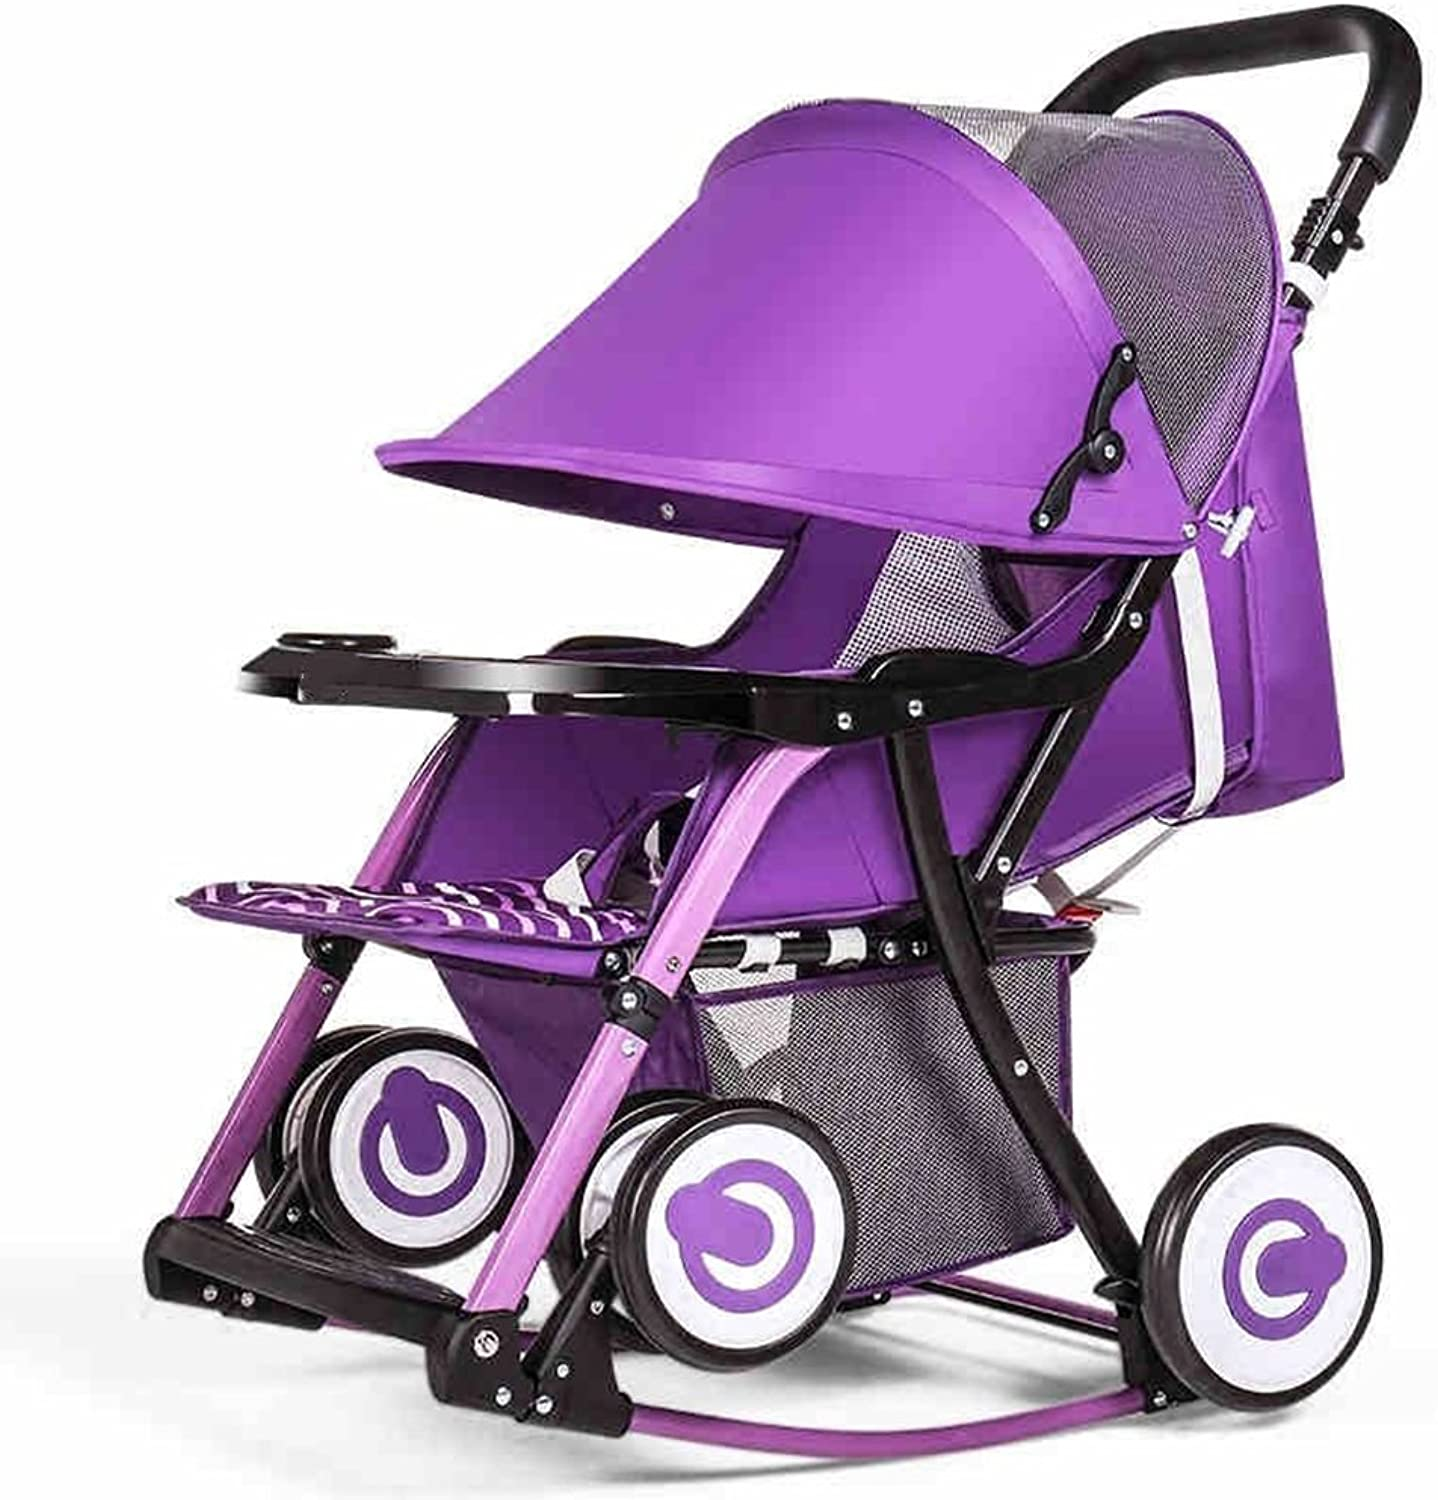 HAIZHEN Intellectual Toy Pushchair Baby Stroll Can Sit Reclining Collapsible for 1 Month-3 Years Old Firstborn Neonatal Boy and Girl Gifts